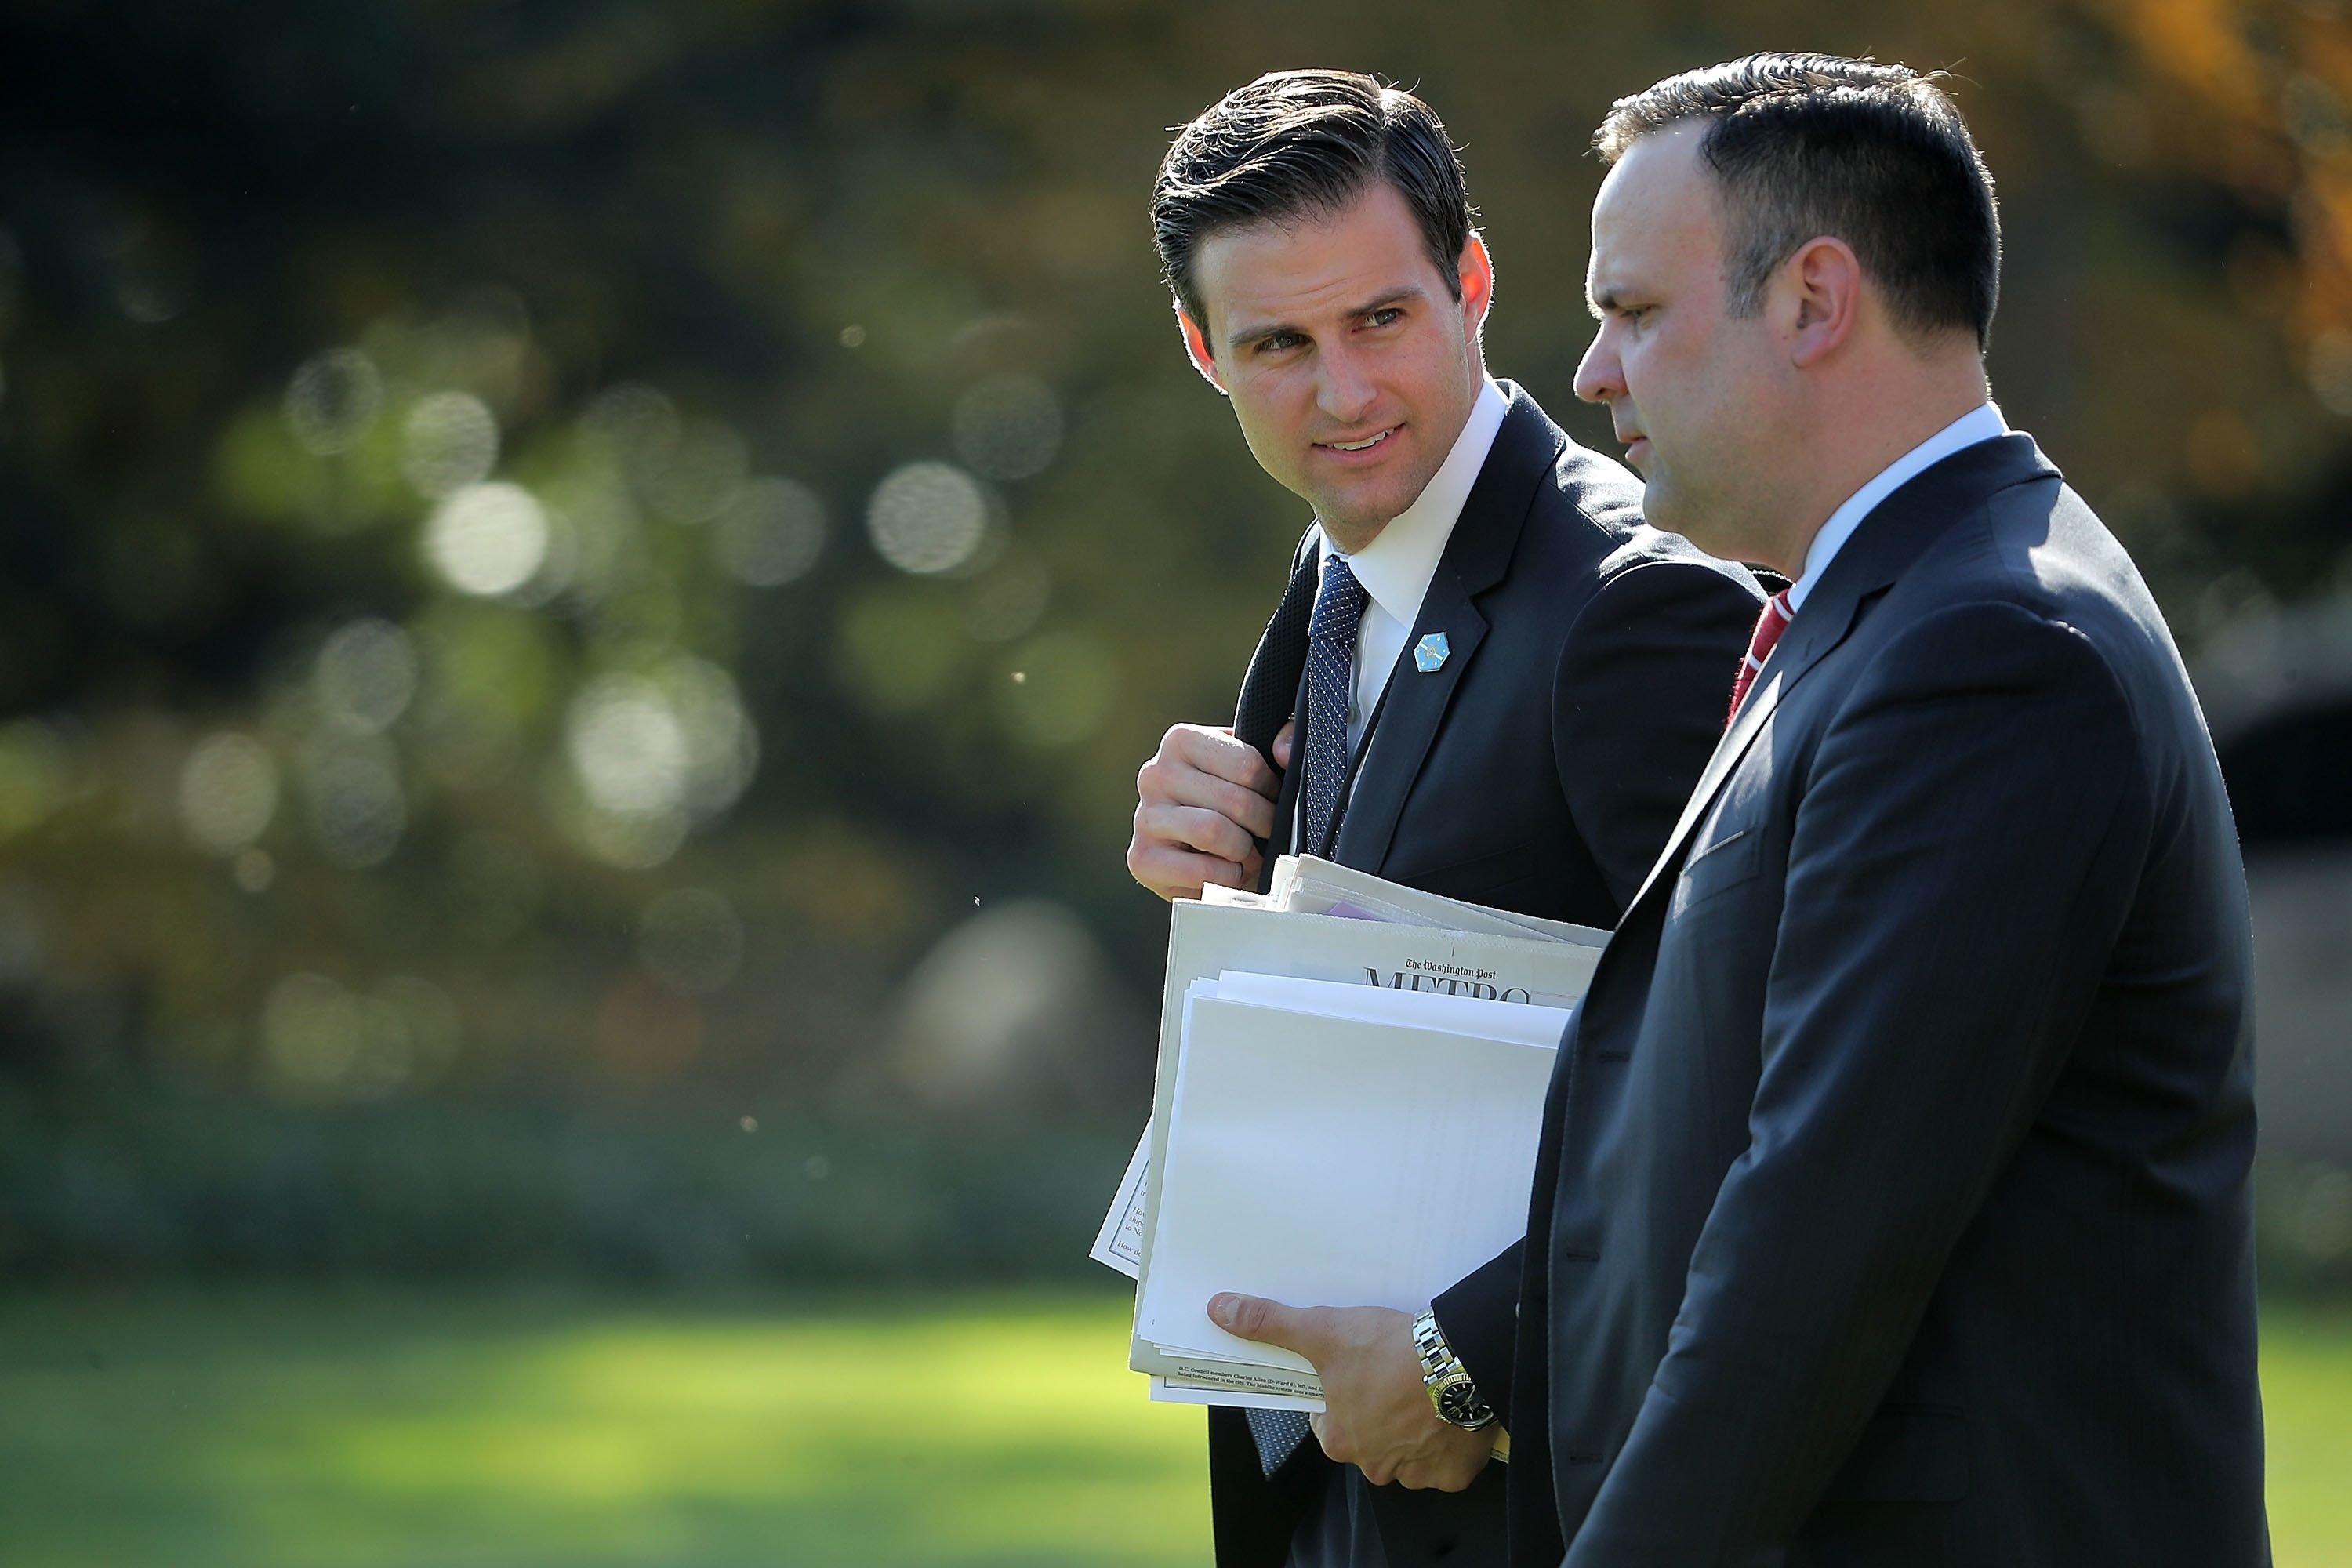 White House aide John McEntee fired, under investigation